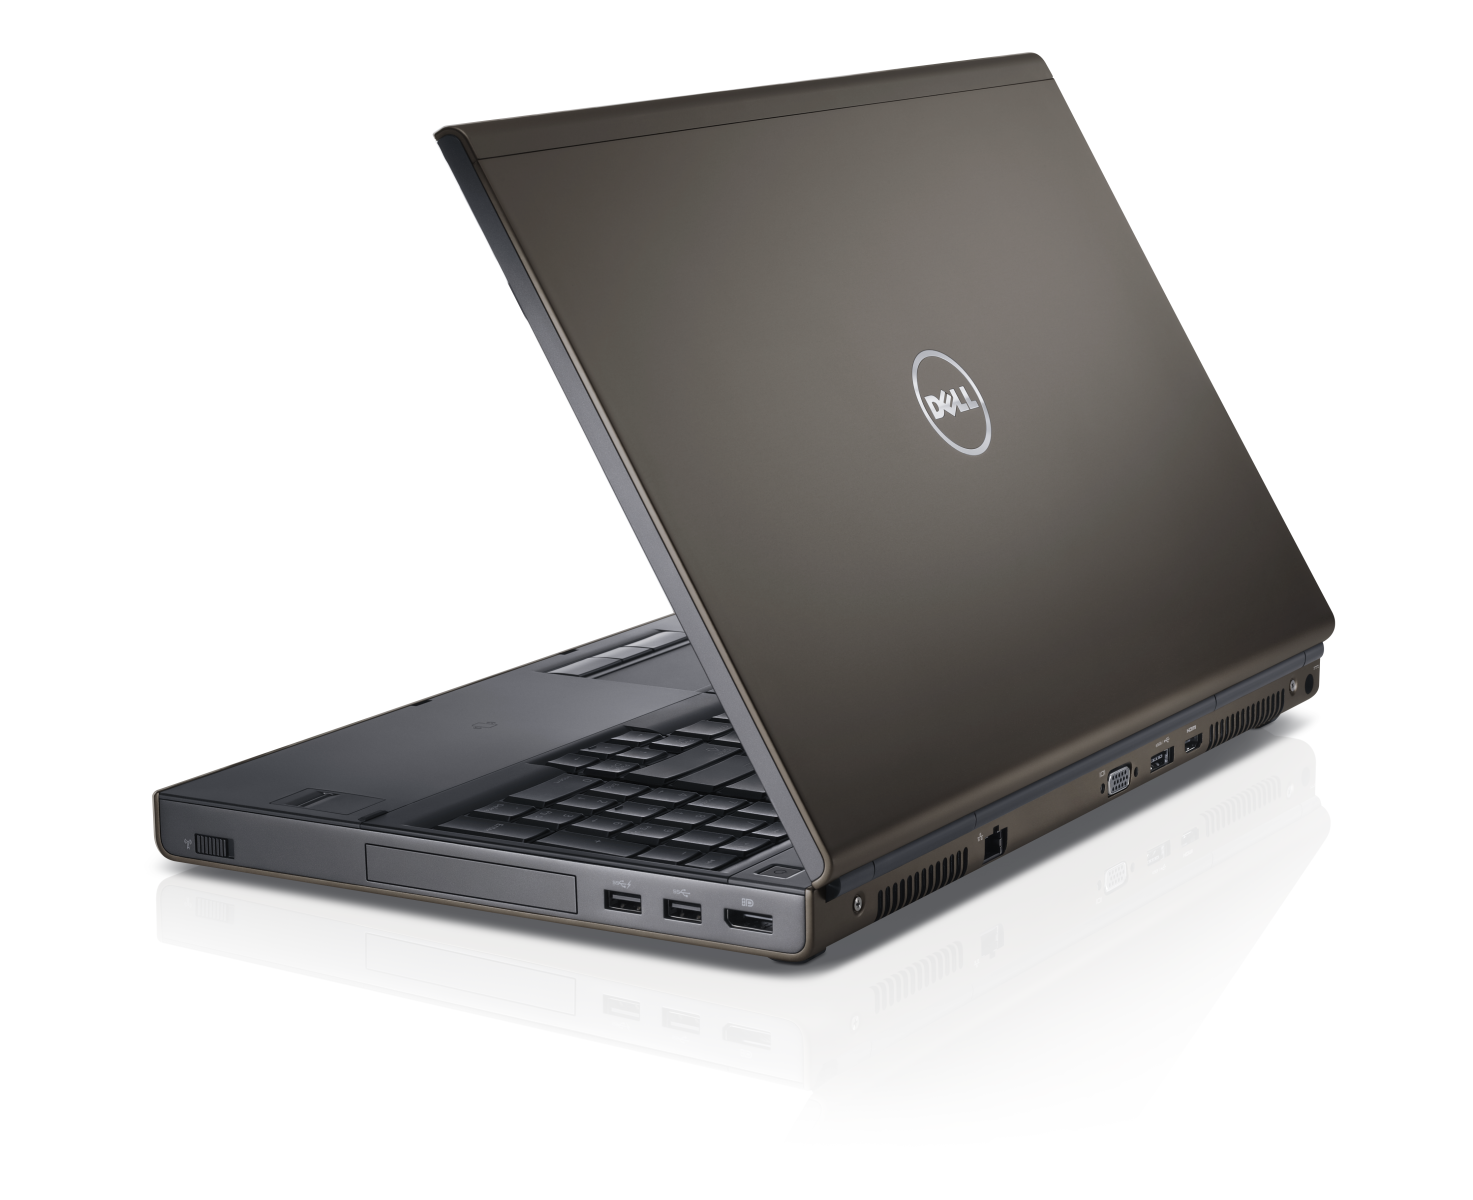 DEL-M6800-I7-Dell Precision M6800 Workstation Laptop Core i7 500 GB Hybrid Drive 8 GB RAM 17.3-inch Windows 10 Pro-image